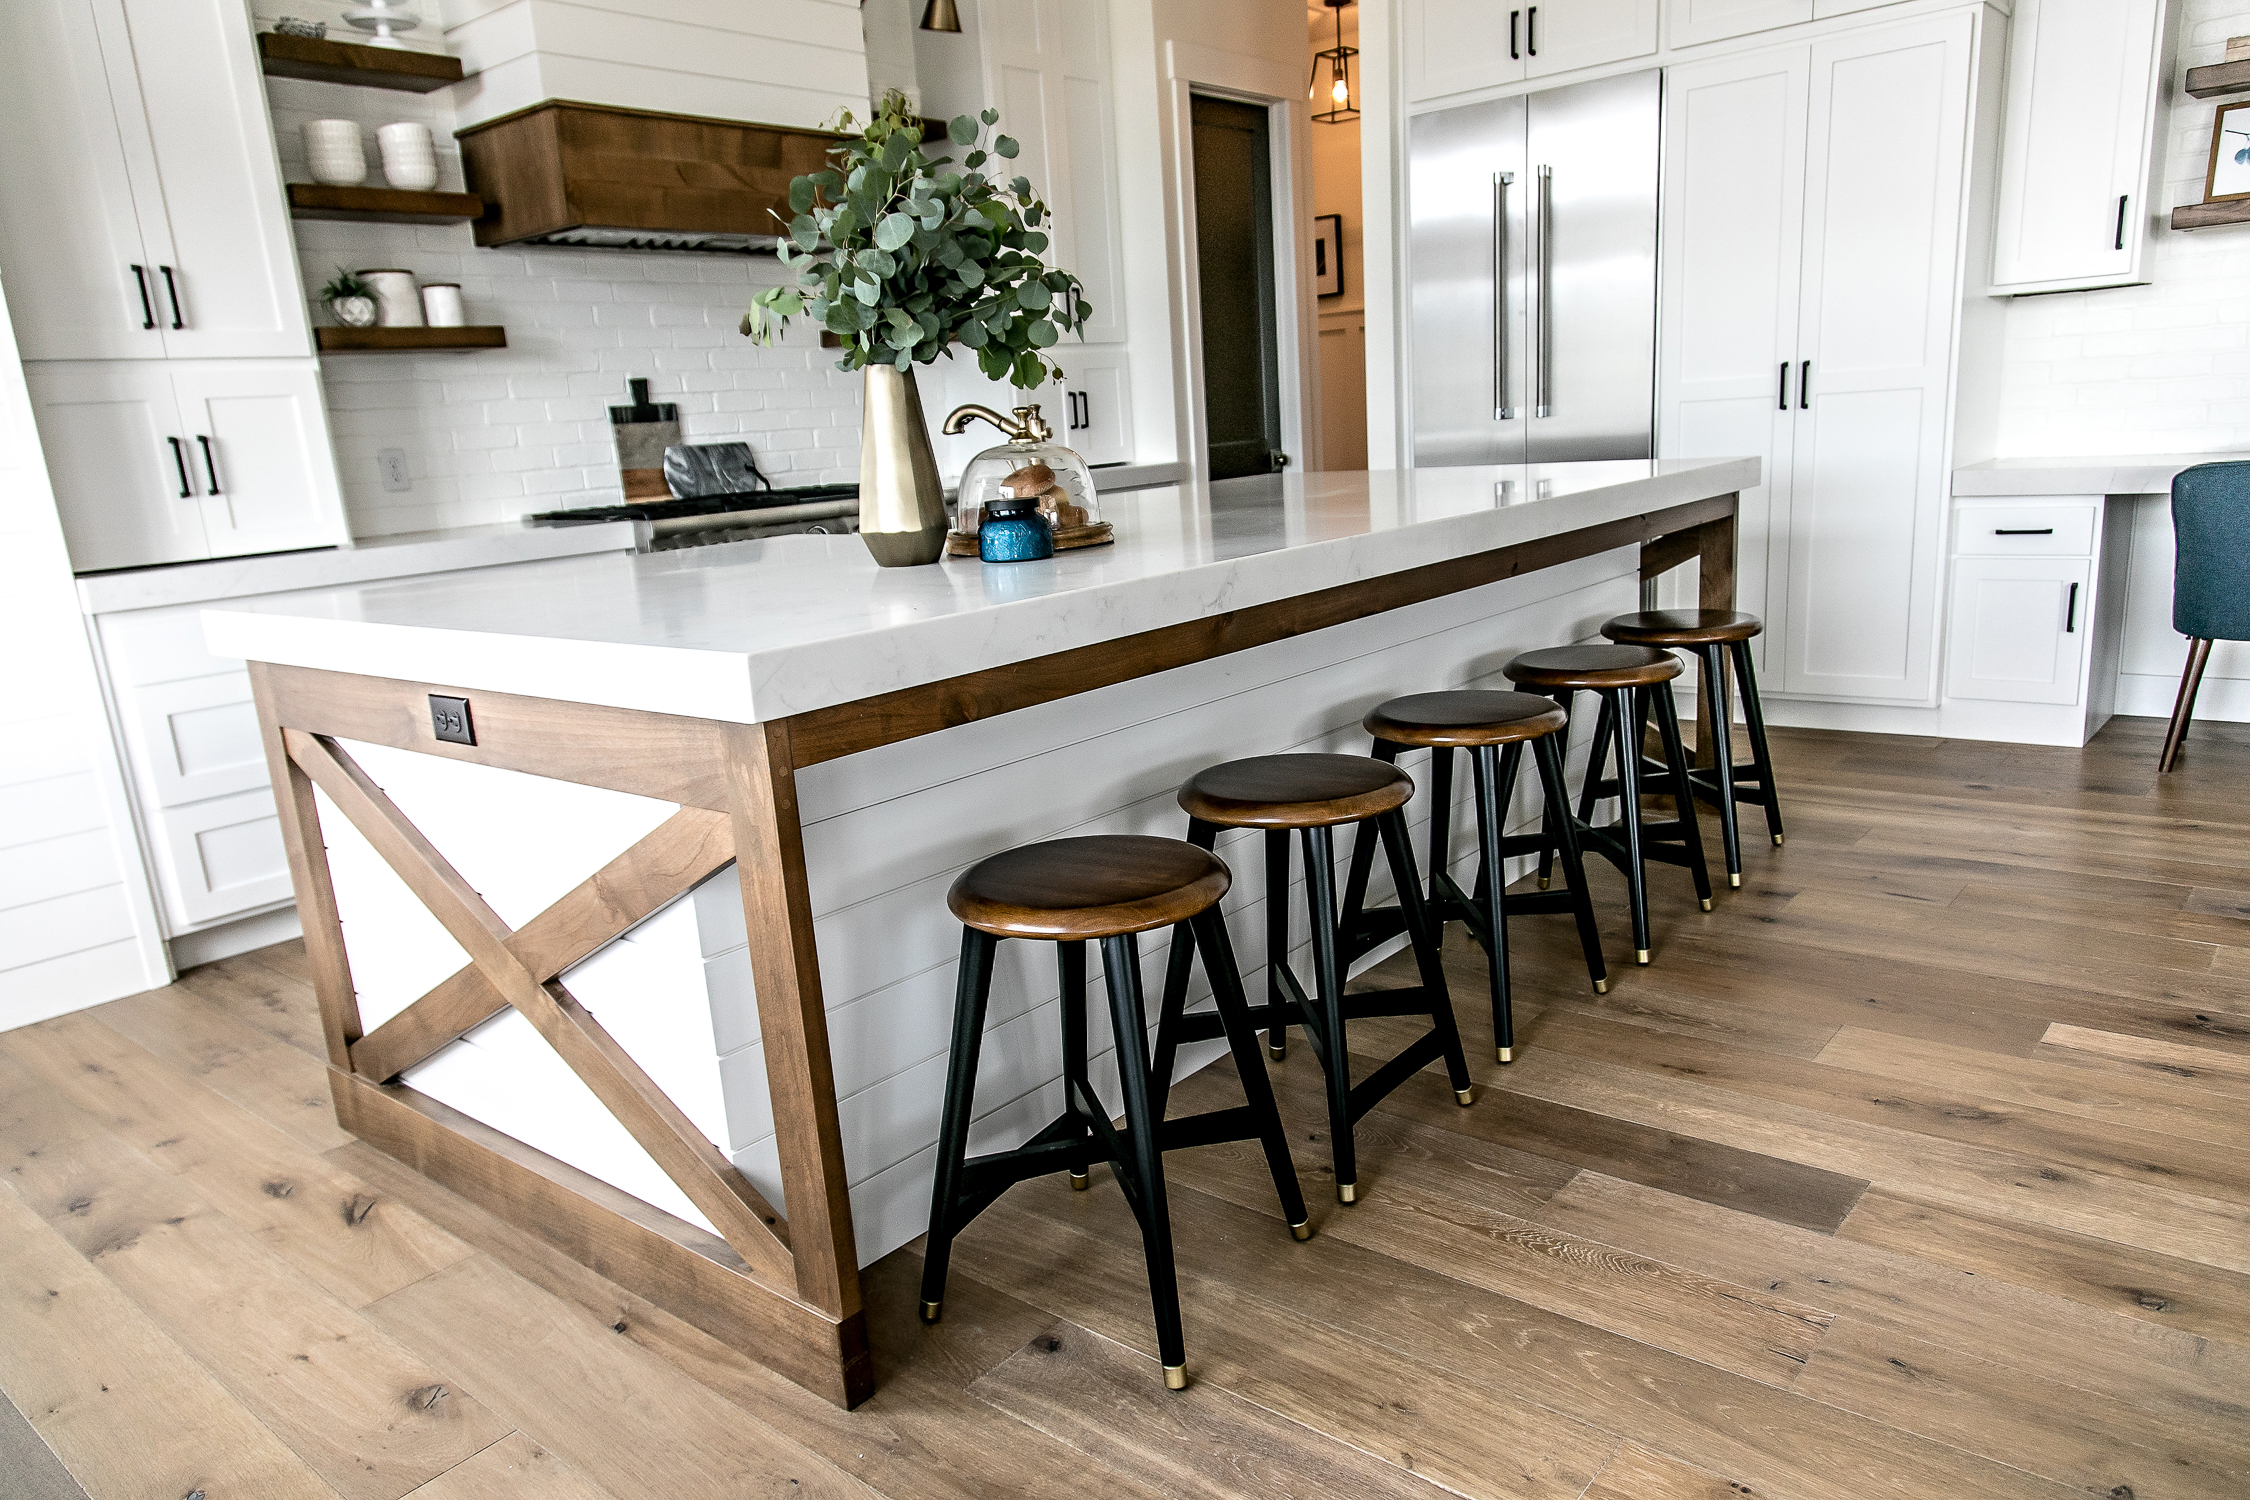 Modern Farmhouse Kitchen smi modern farmhouse kitchen and dining nook - sita montgomery